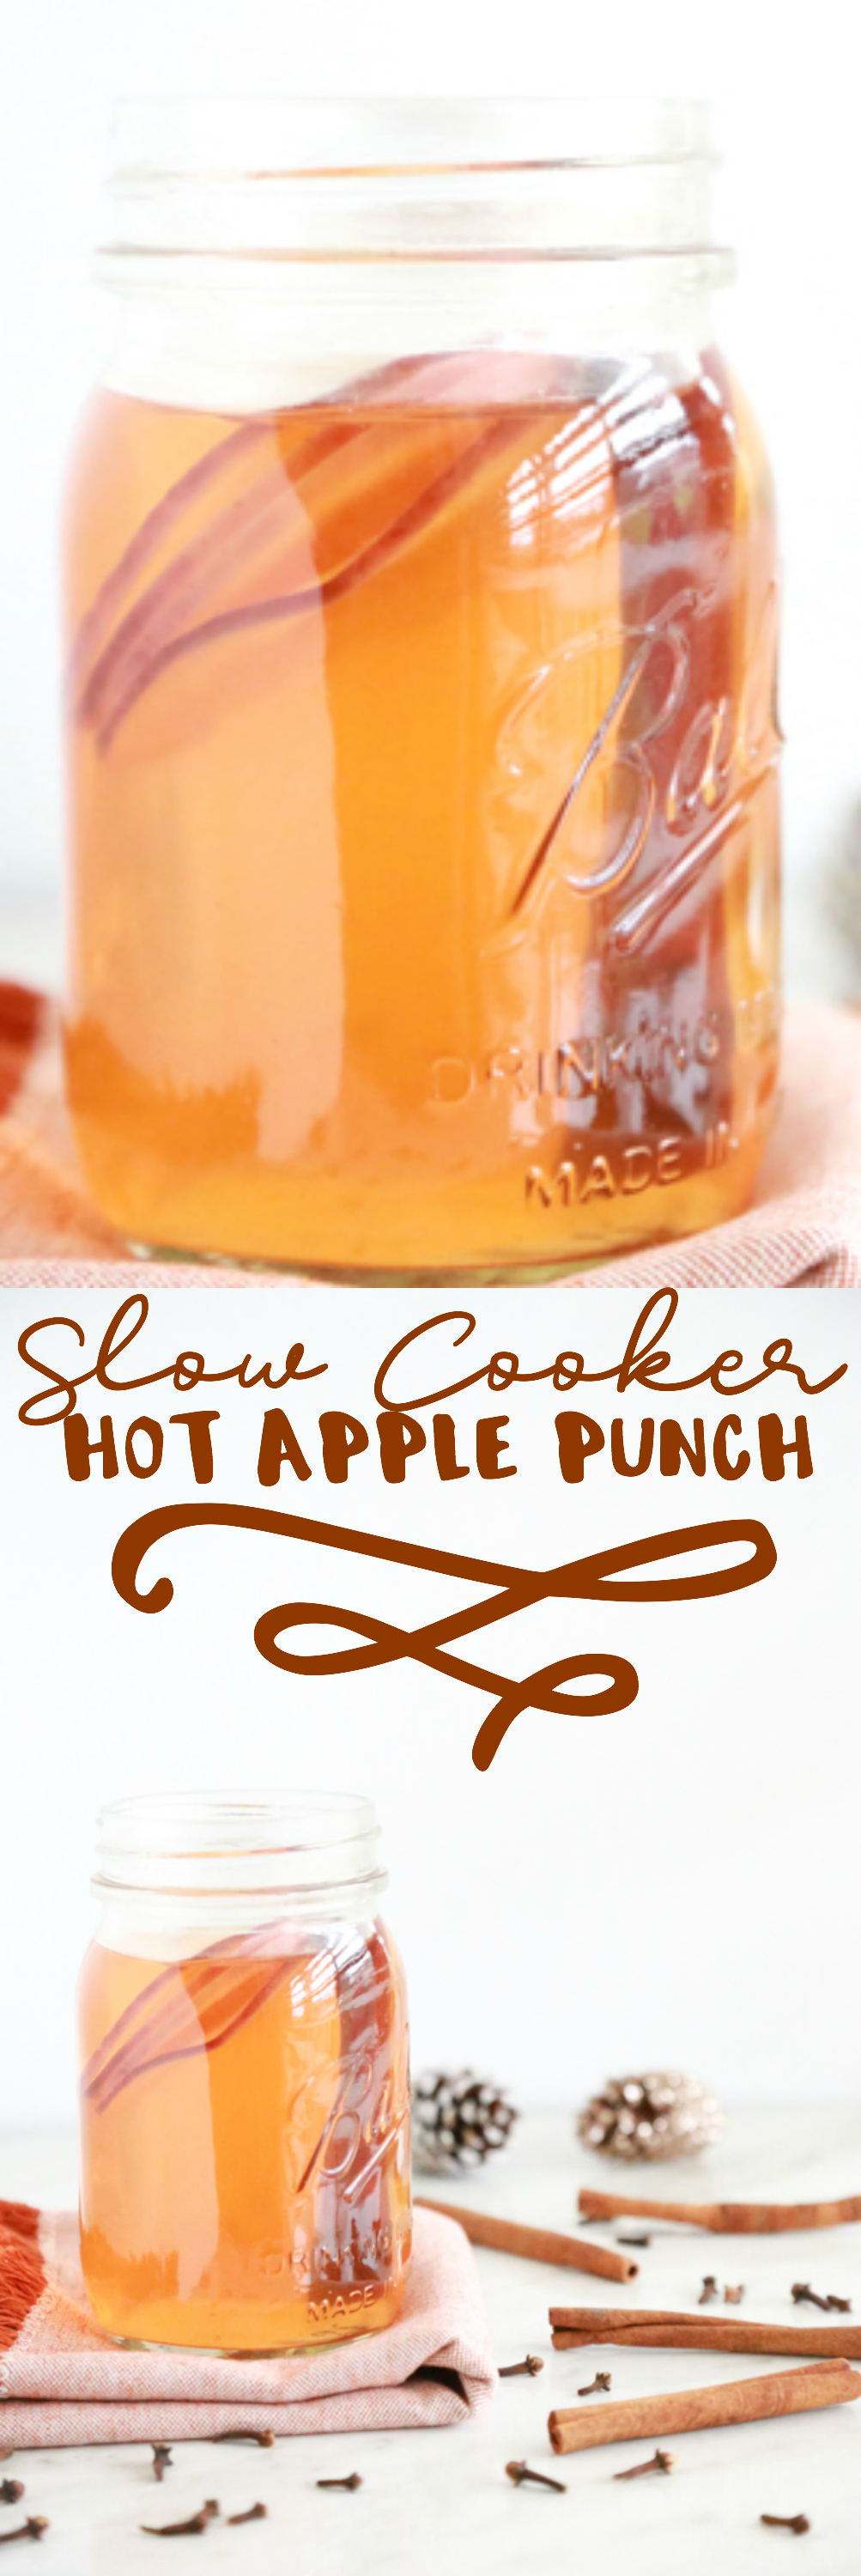 Enjoy the flavors of the season with this Slow Cooker Hot Apple Punch. This non-alcoholic holiday beverage is perfect for everyone at your parties.